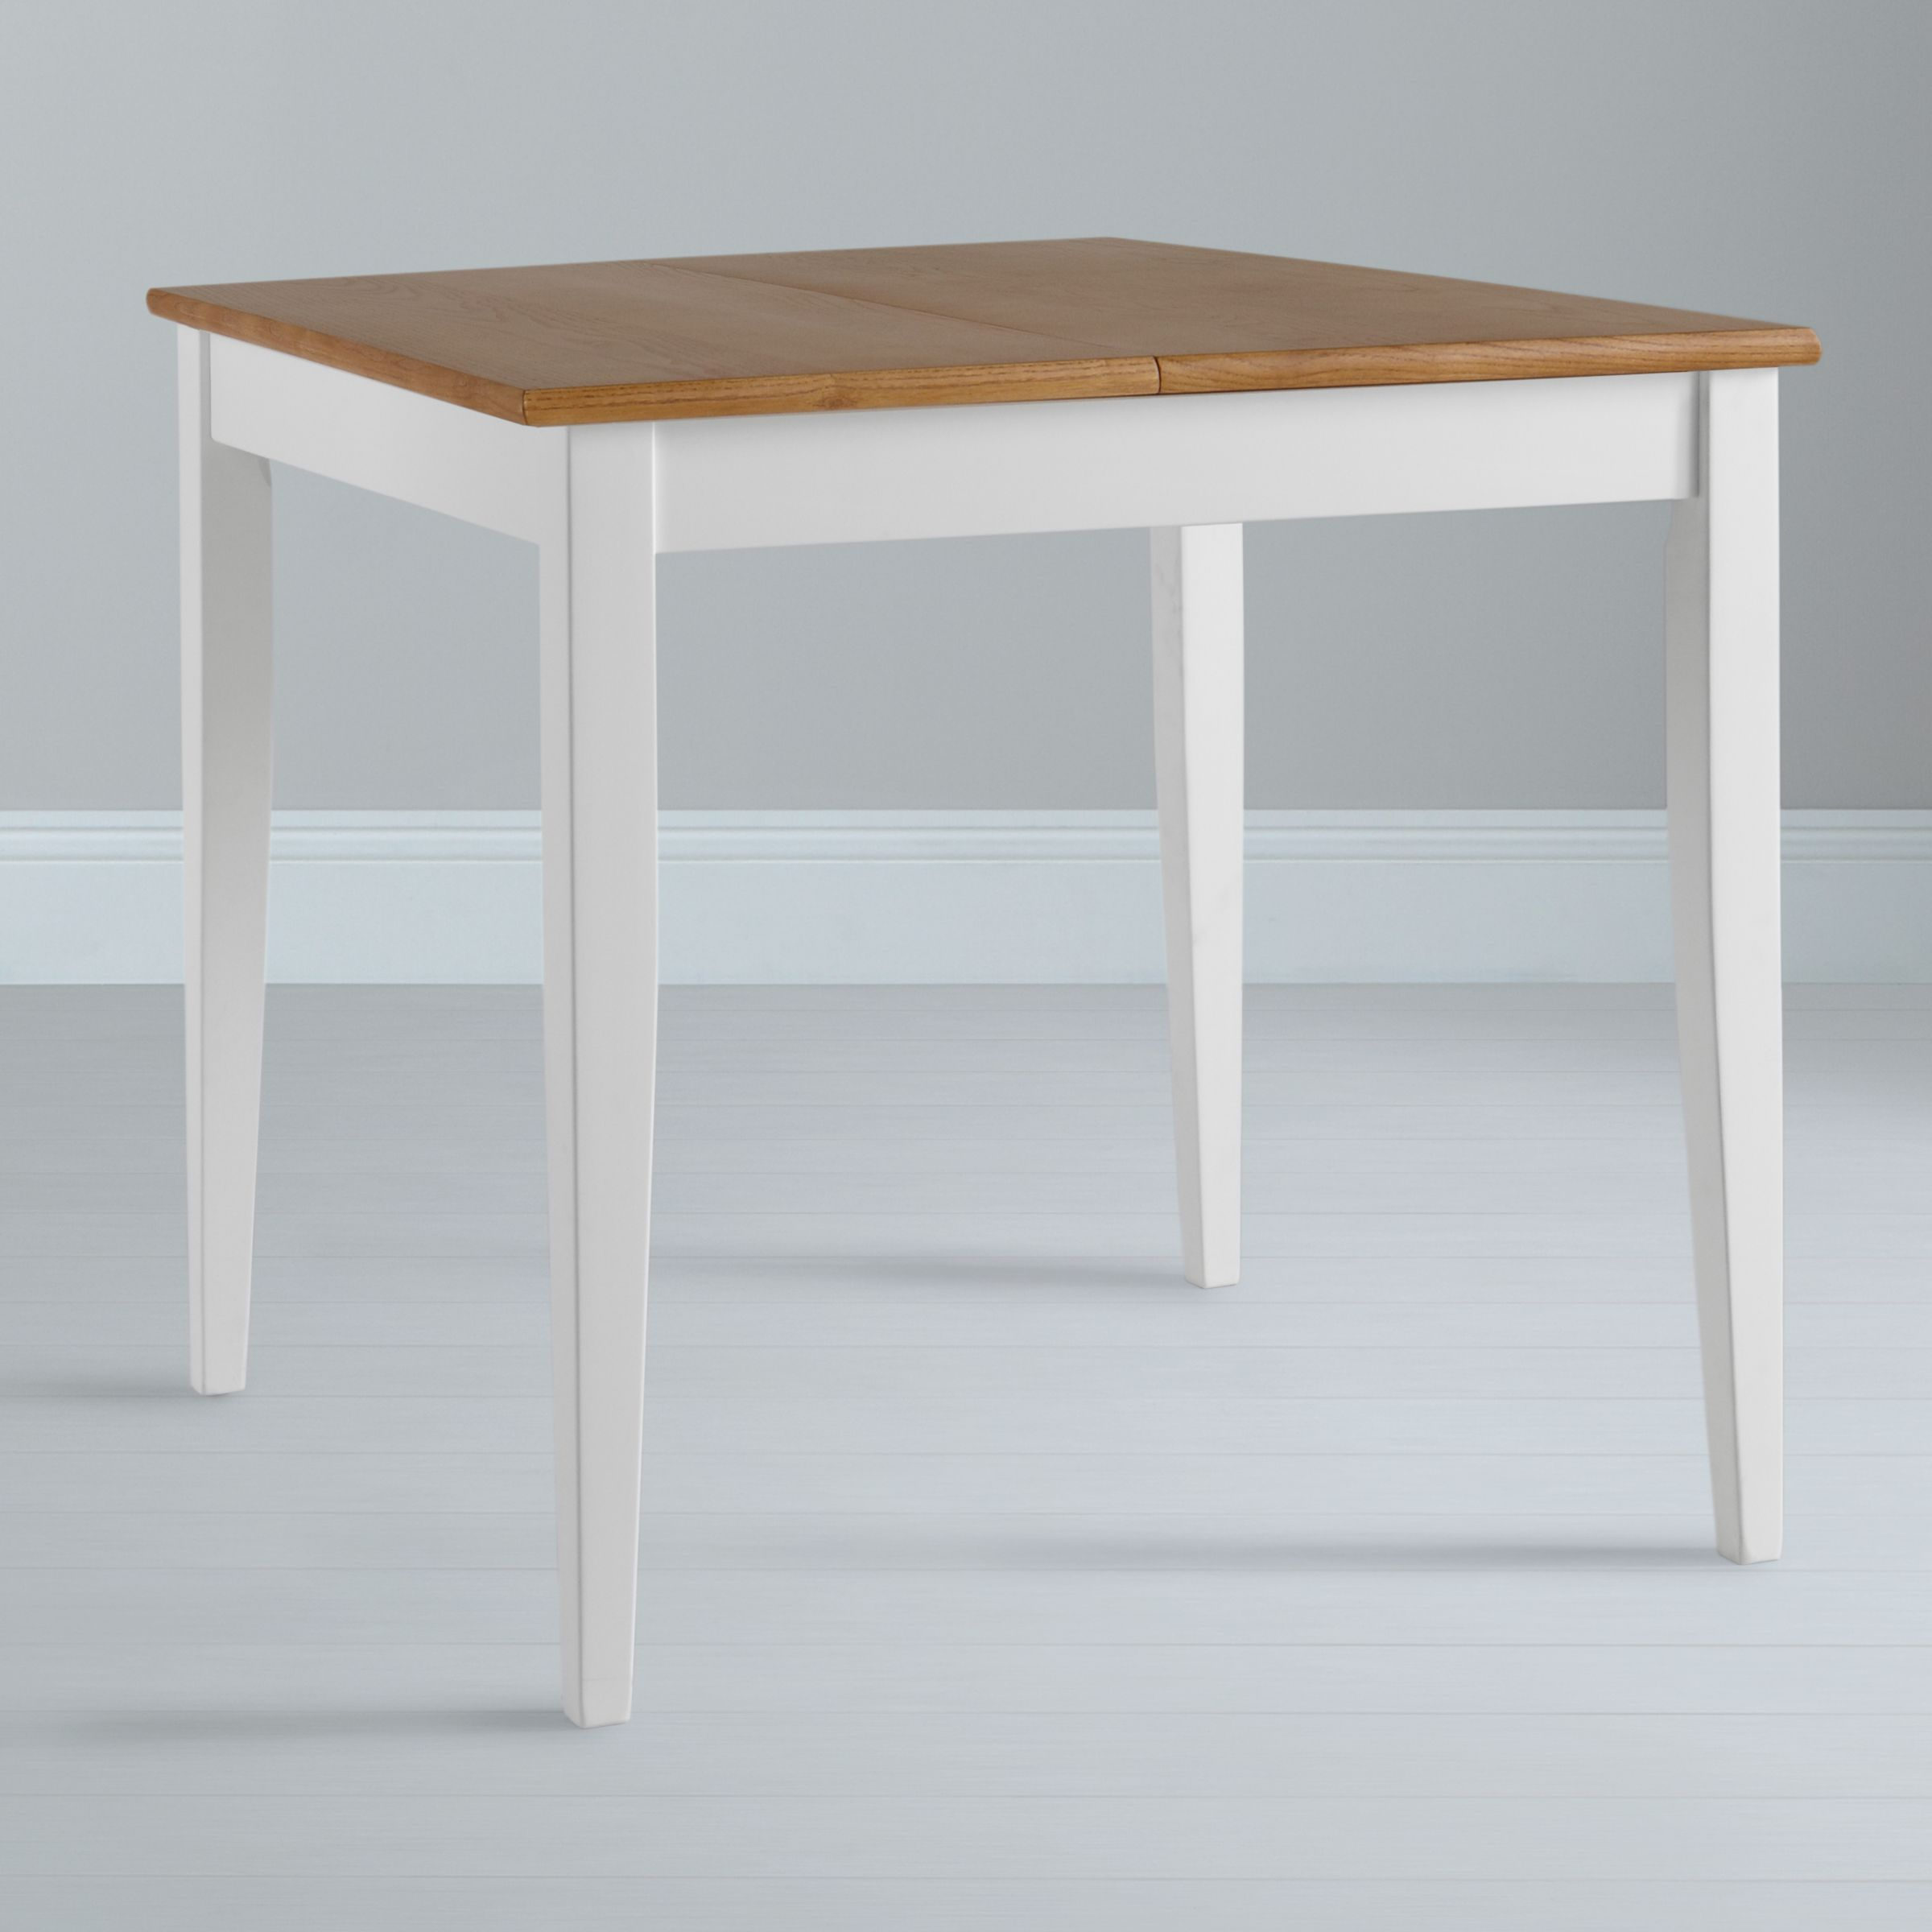 John Lewis Lacock 4 Seater Square Extending Dining Table White Oak